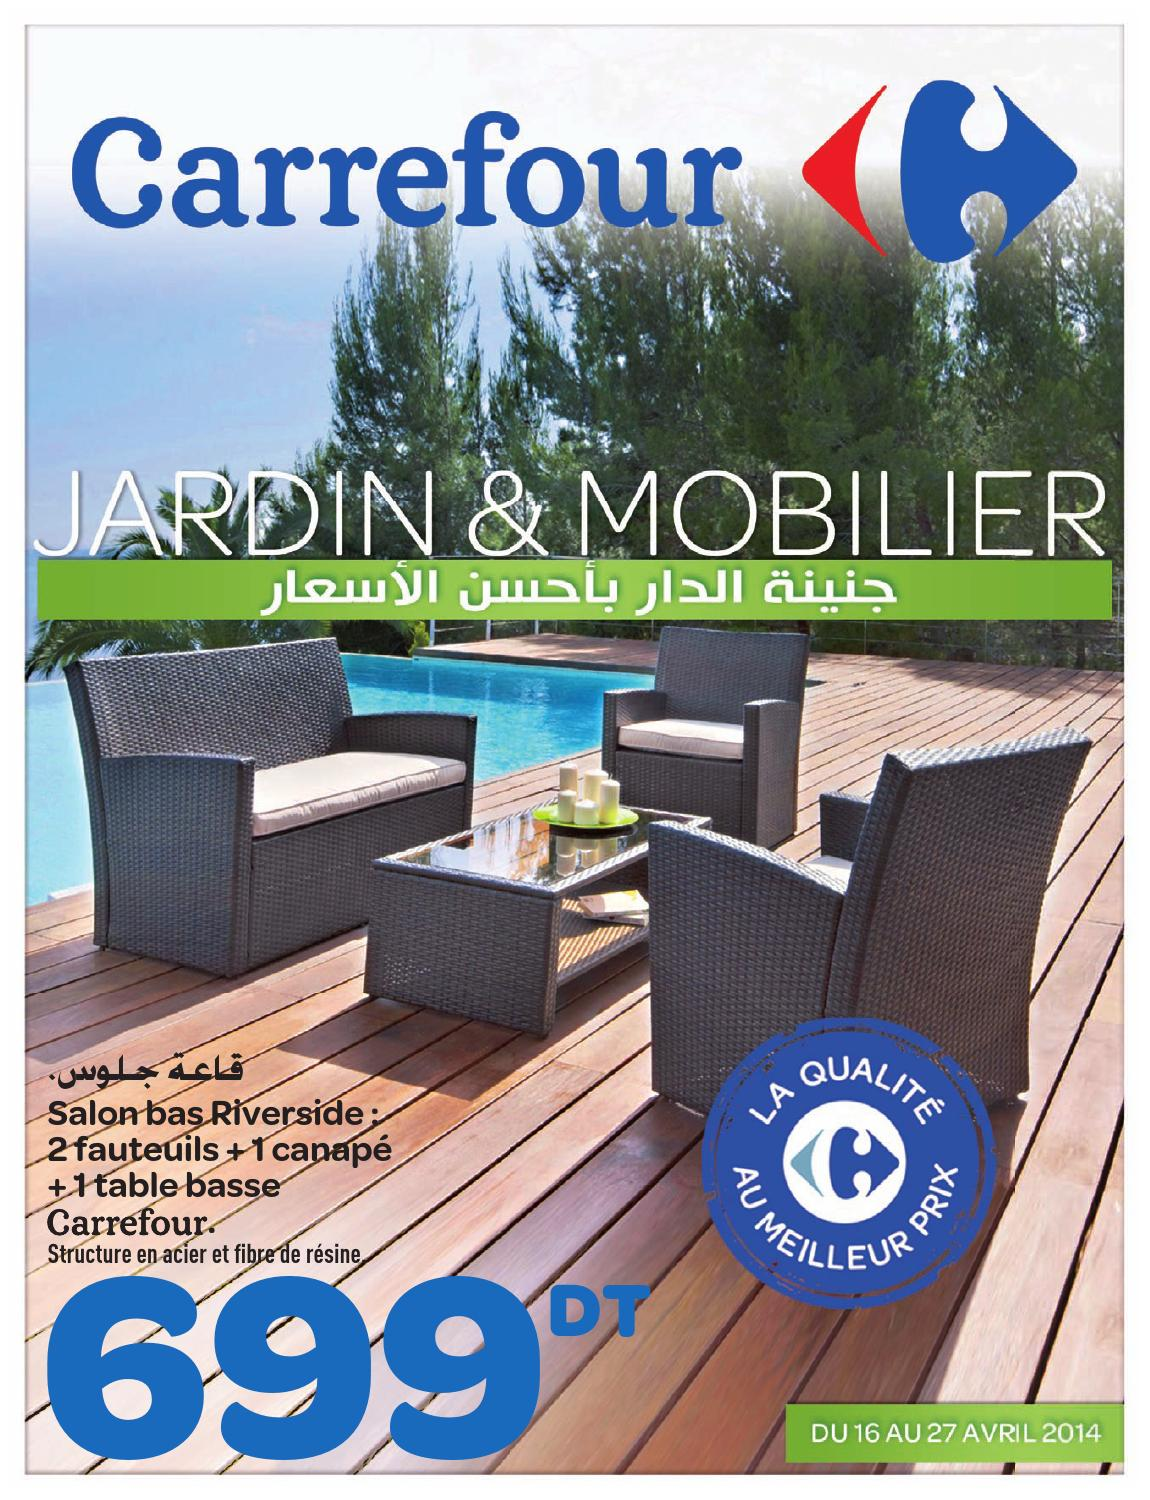 Catalogue carrefour jardin et mobilier by carrefour - Salon de jardin ibiza ...